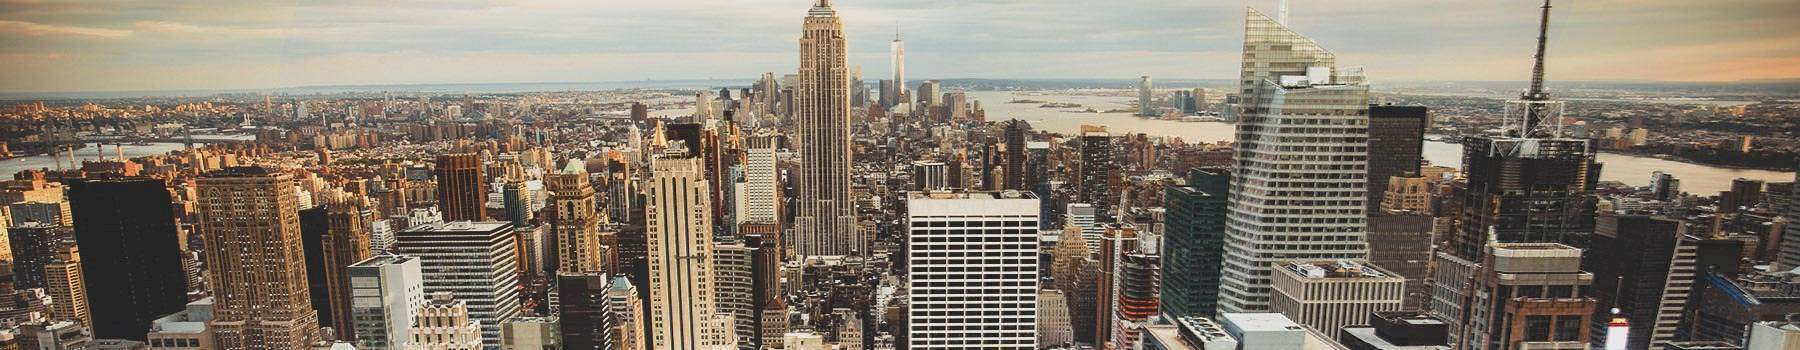 Attractions Things To Do In Midtown Manhattan The Iroquois